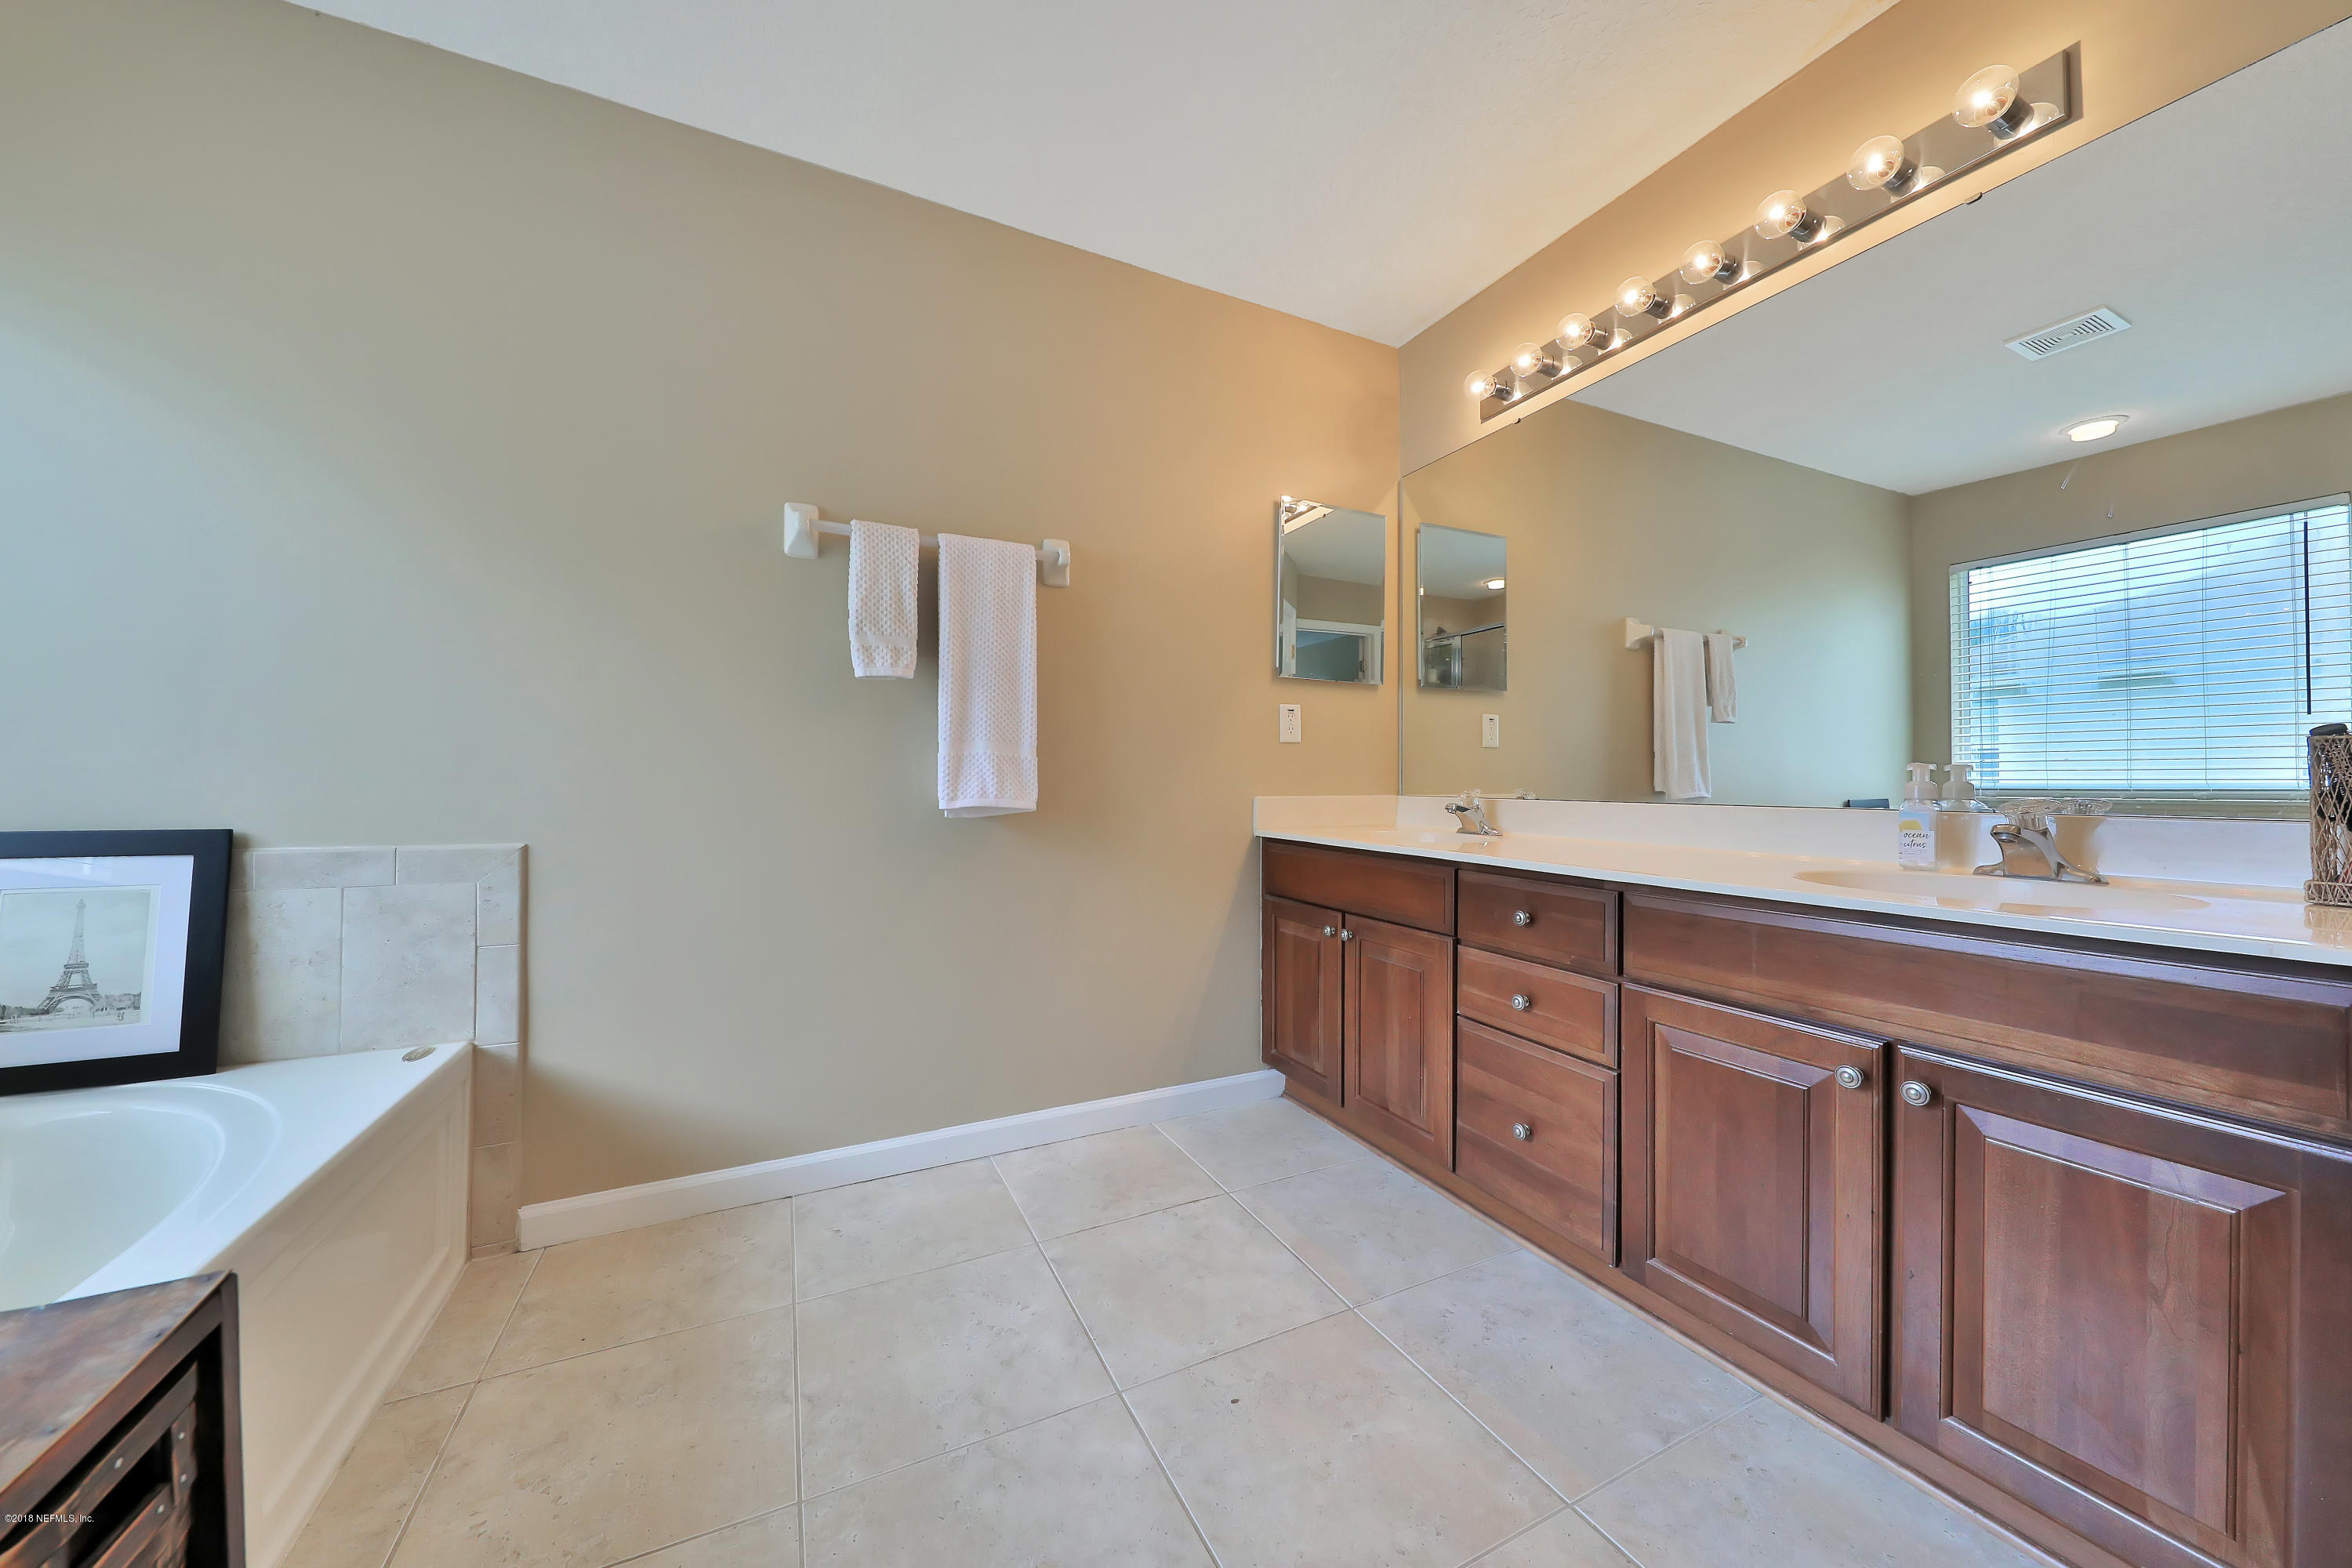 936 TENNESSEE, ST JOHNS, FLORIDA 32259, 6 Bedrooms Bedrooms, ,4 BathroomsBathrooms,Residential - single family,For sale,TENNESSEE,939444